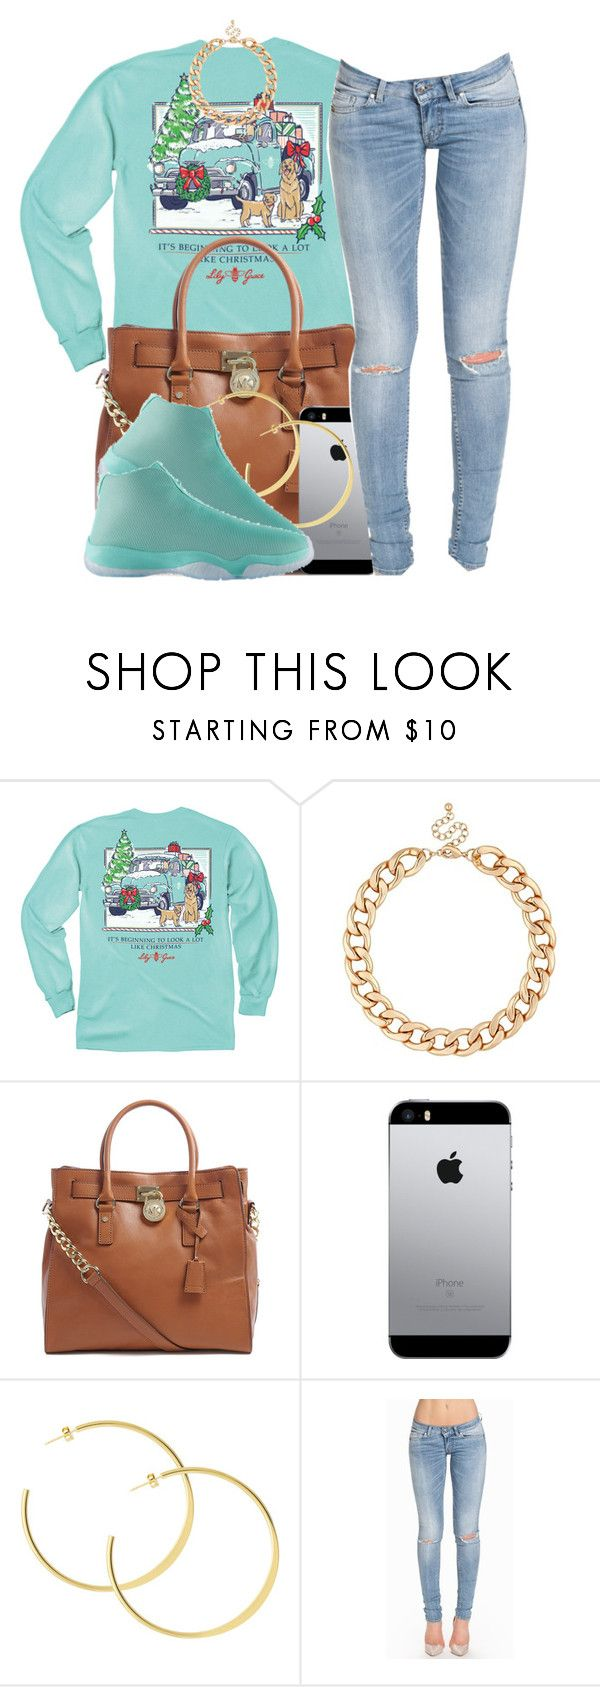 """""""12 25 16"""" by polyvoreitems5 ❤ liked on Polyvore featuring MOOD, MICHAEL Michael Kors, Tiger of Sweden and NIKE"""